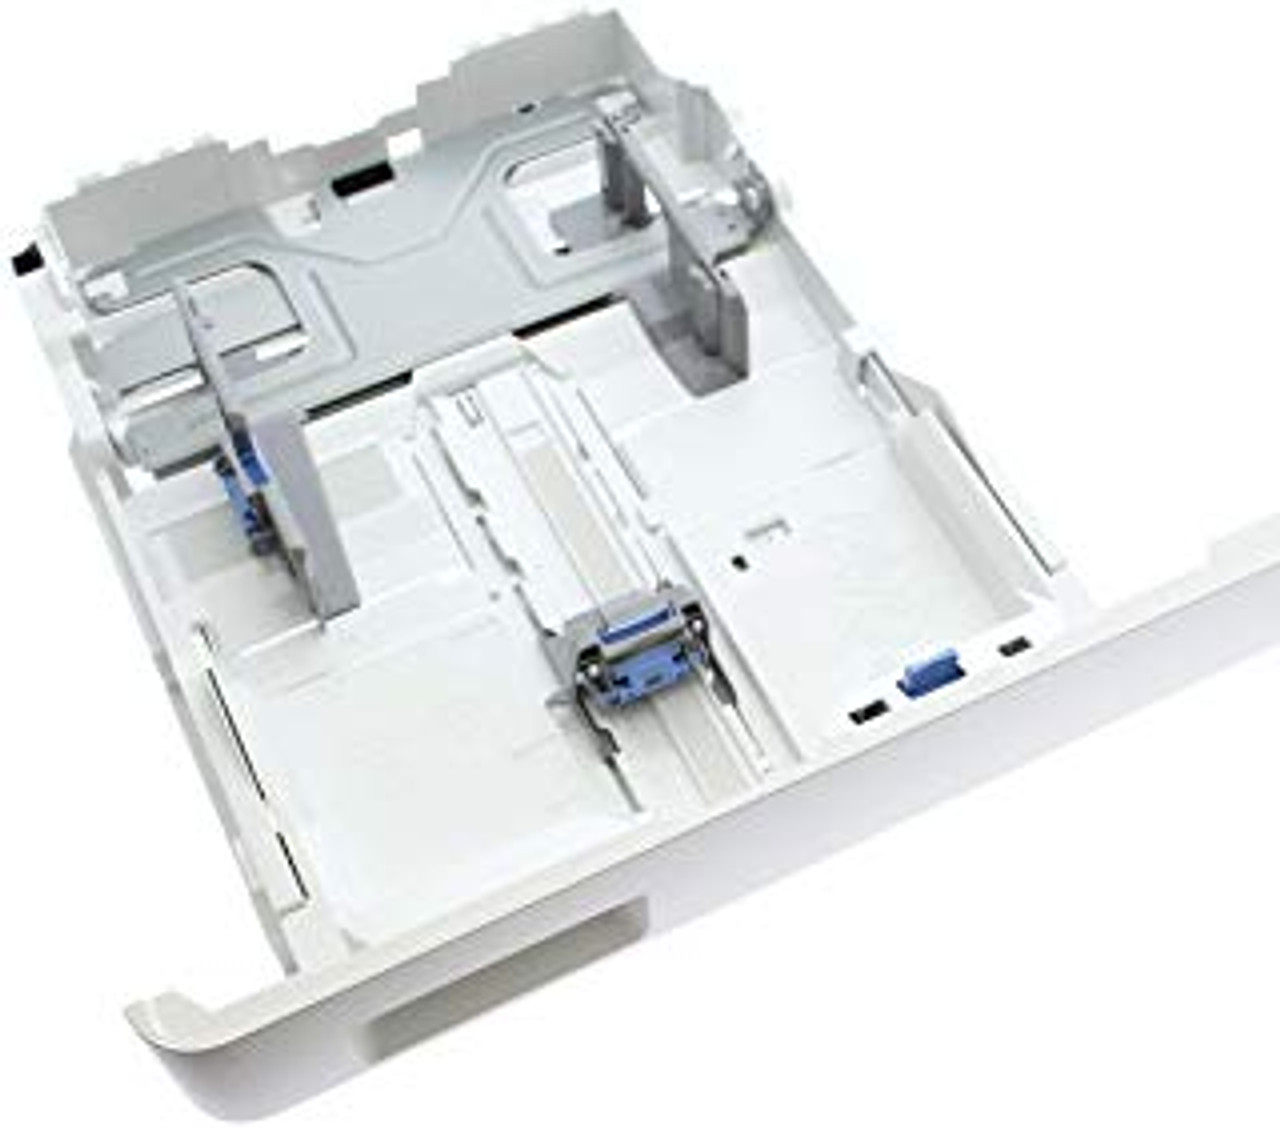 HP Paper Cassette paper Tray #2 Assembly for HP M426FDW printer M426 & M402DW